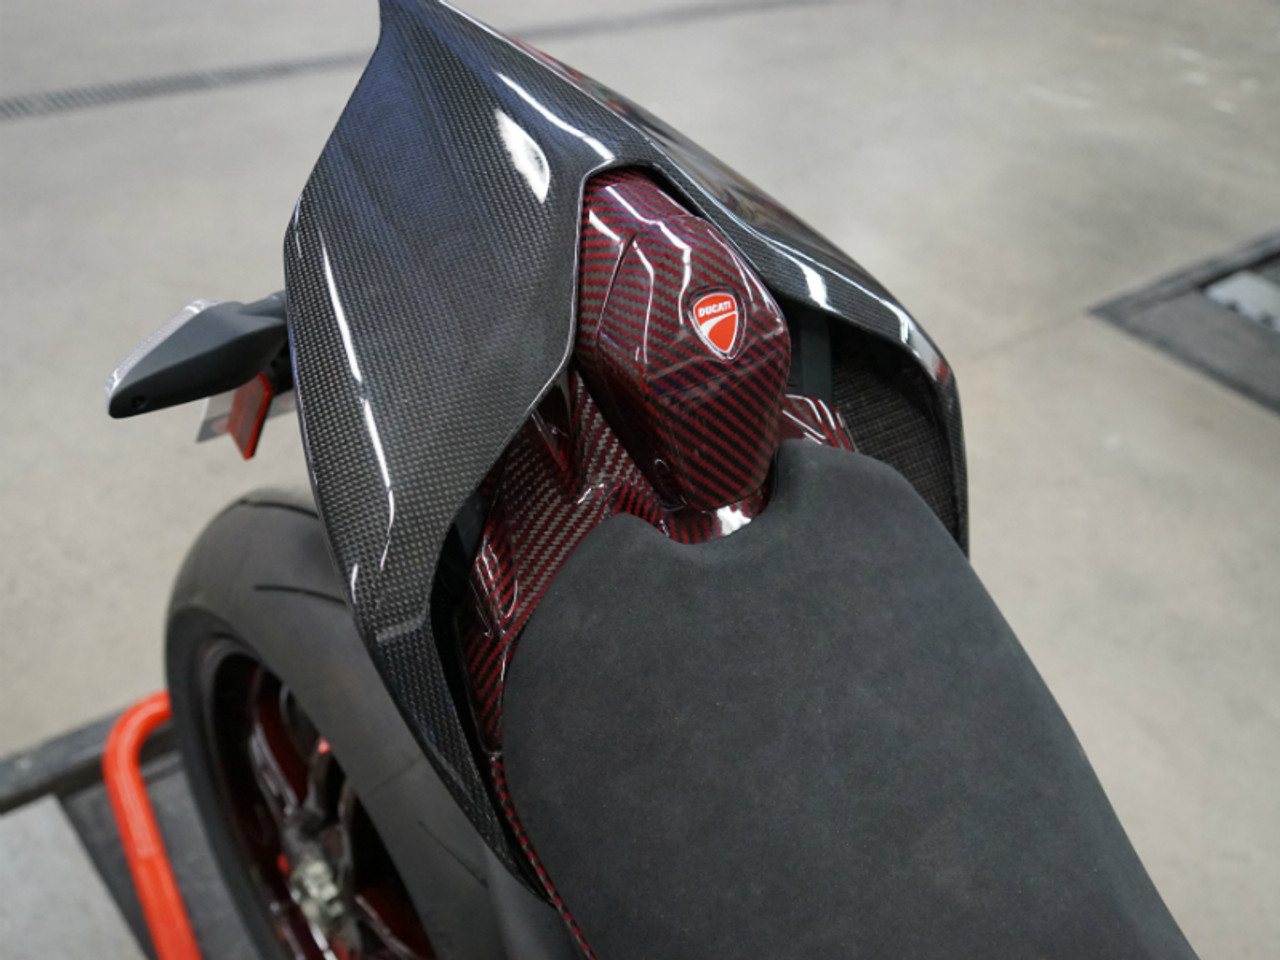 Seat Back in Glosy Black & Red Twill Weave Carbon Fiber for Ducati Panigale V4 installed